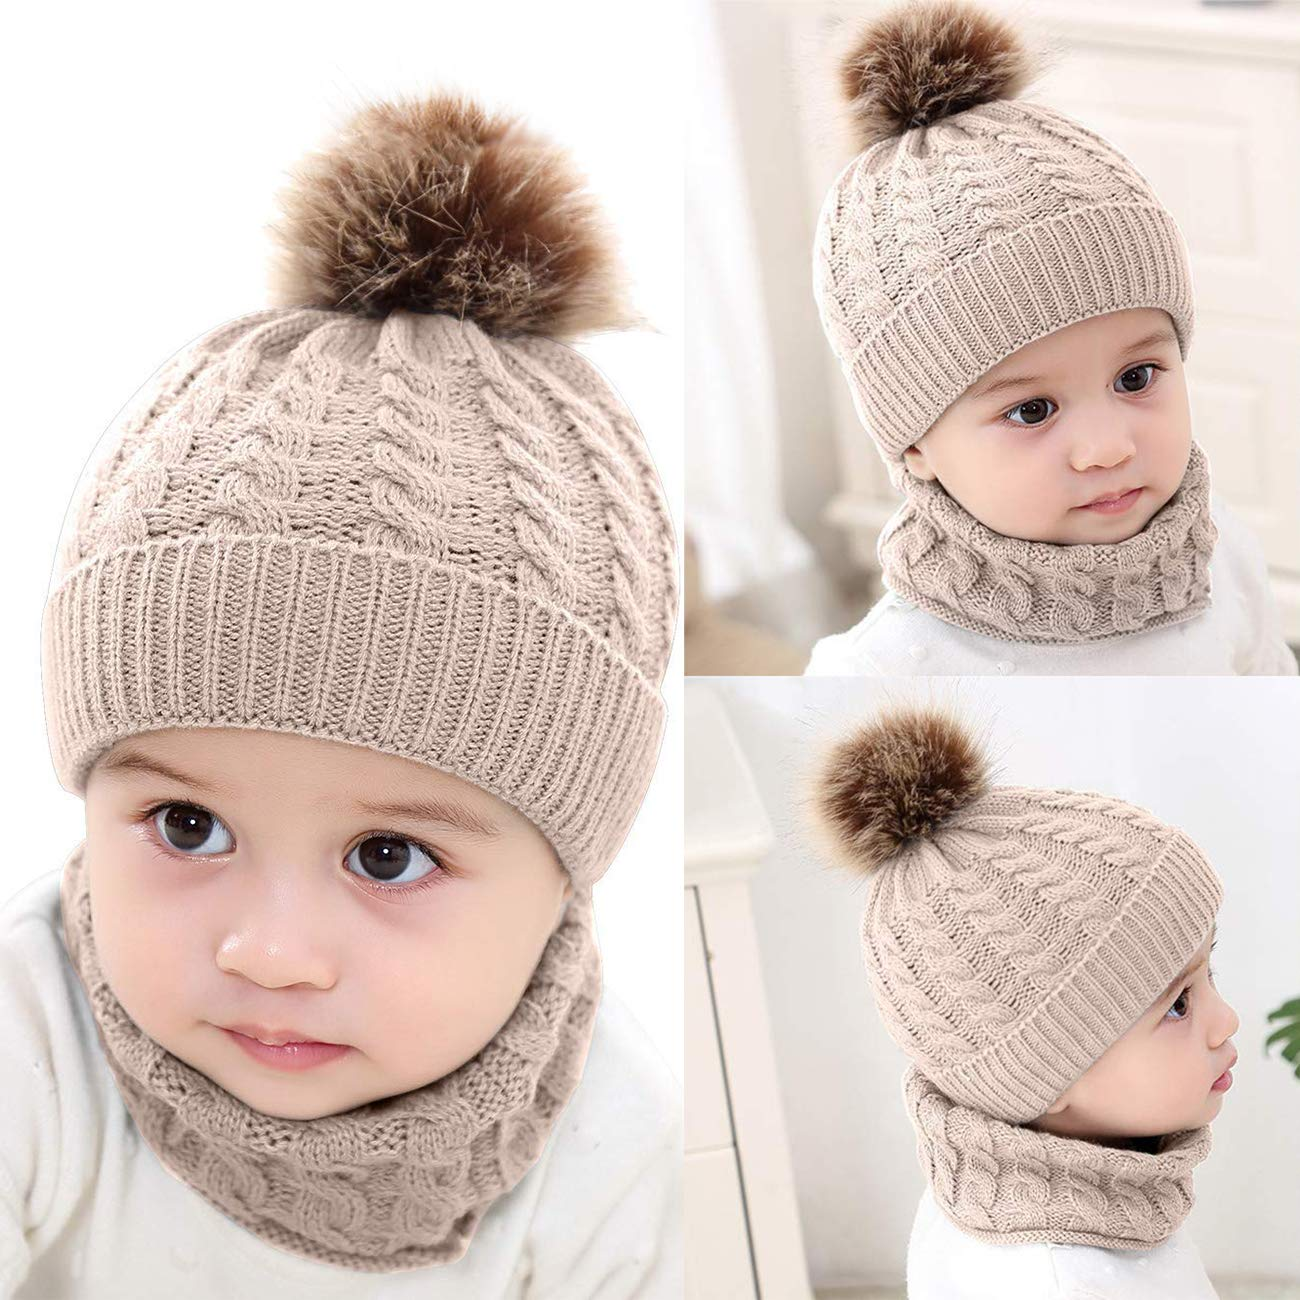 df8c6e71dbe81d DRESHOW BQUBO 2 Pack Baby Winter Knit Hat Toddler Crochet Hat with Necklace  Children抯 Pom Winter Hat Beanie: Amazon.ca: Clothing & Accessories